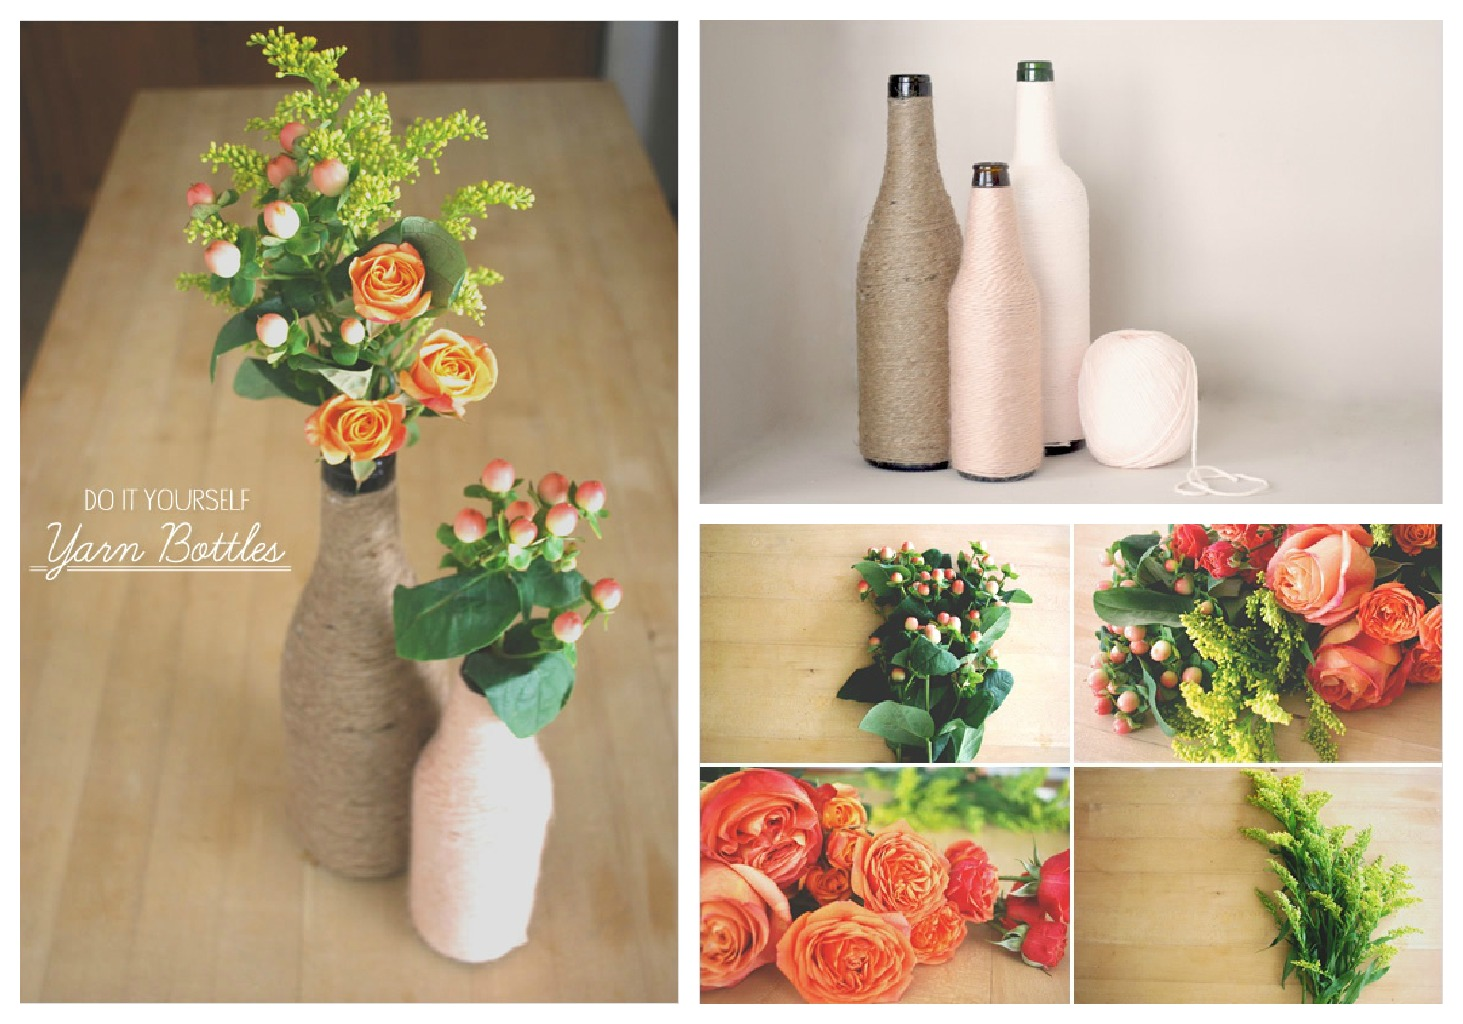 Diy Home Decorating Ideas 30 Kitchen Crafts And Diy Home Decor